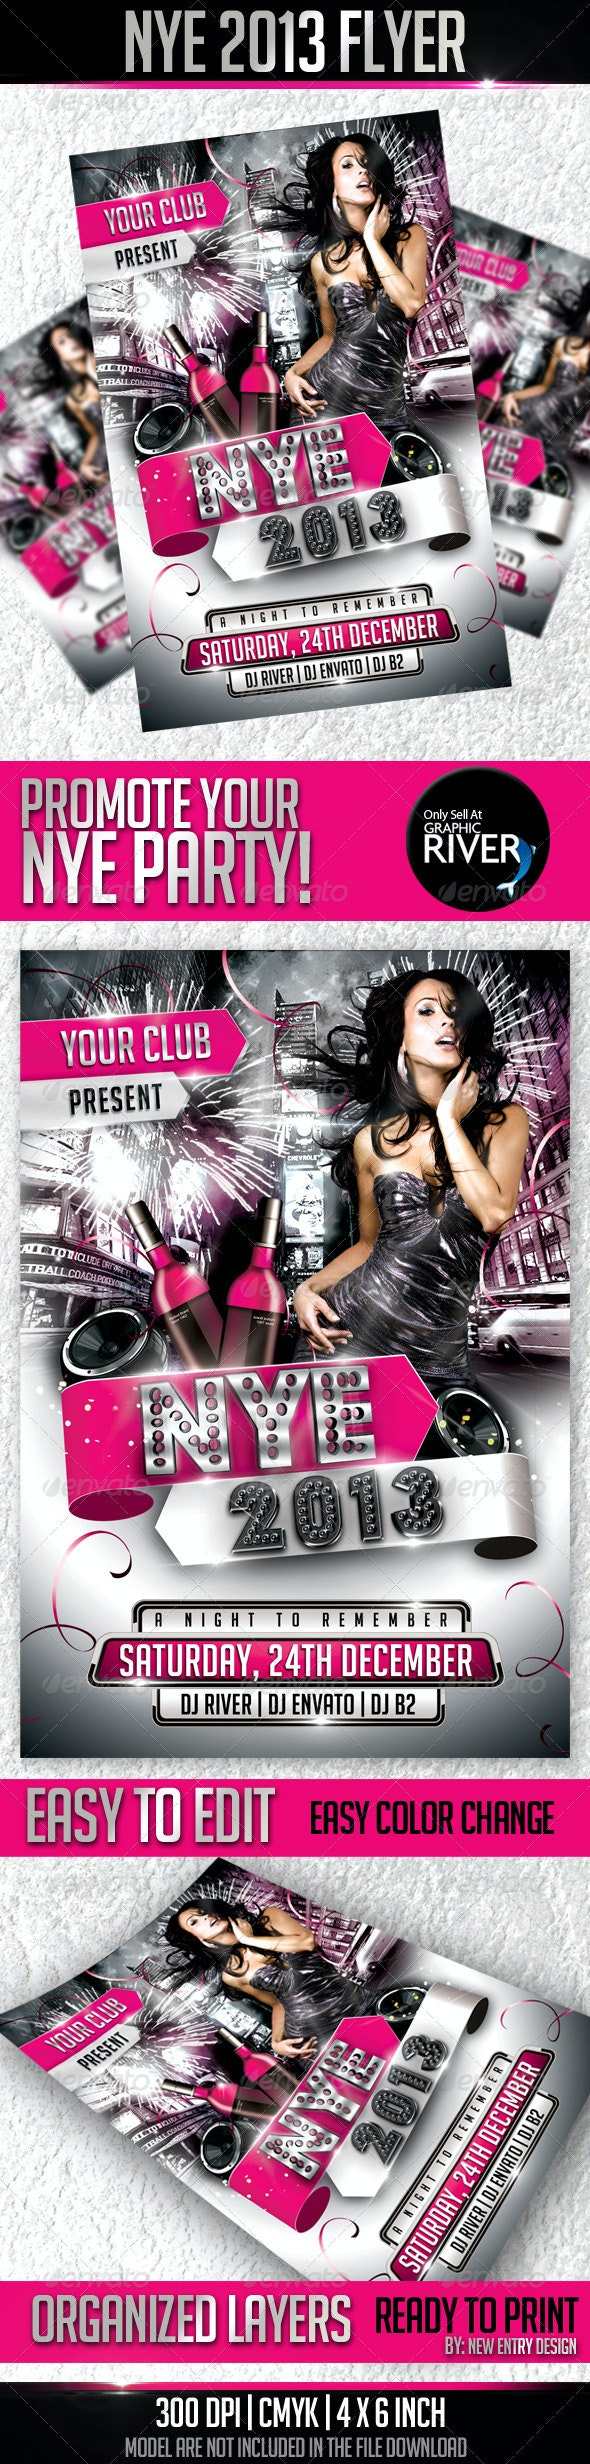 Nye 2013 Flyer Template - Events Flyers